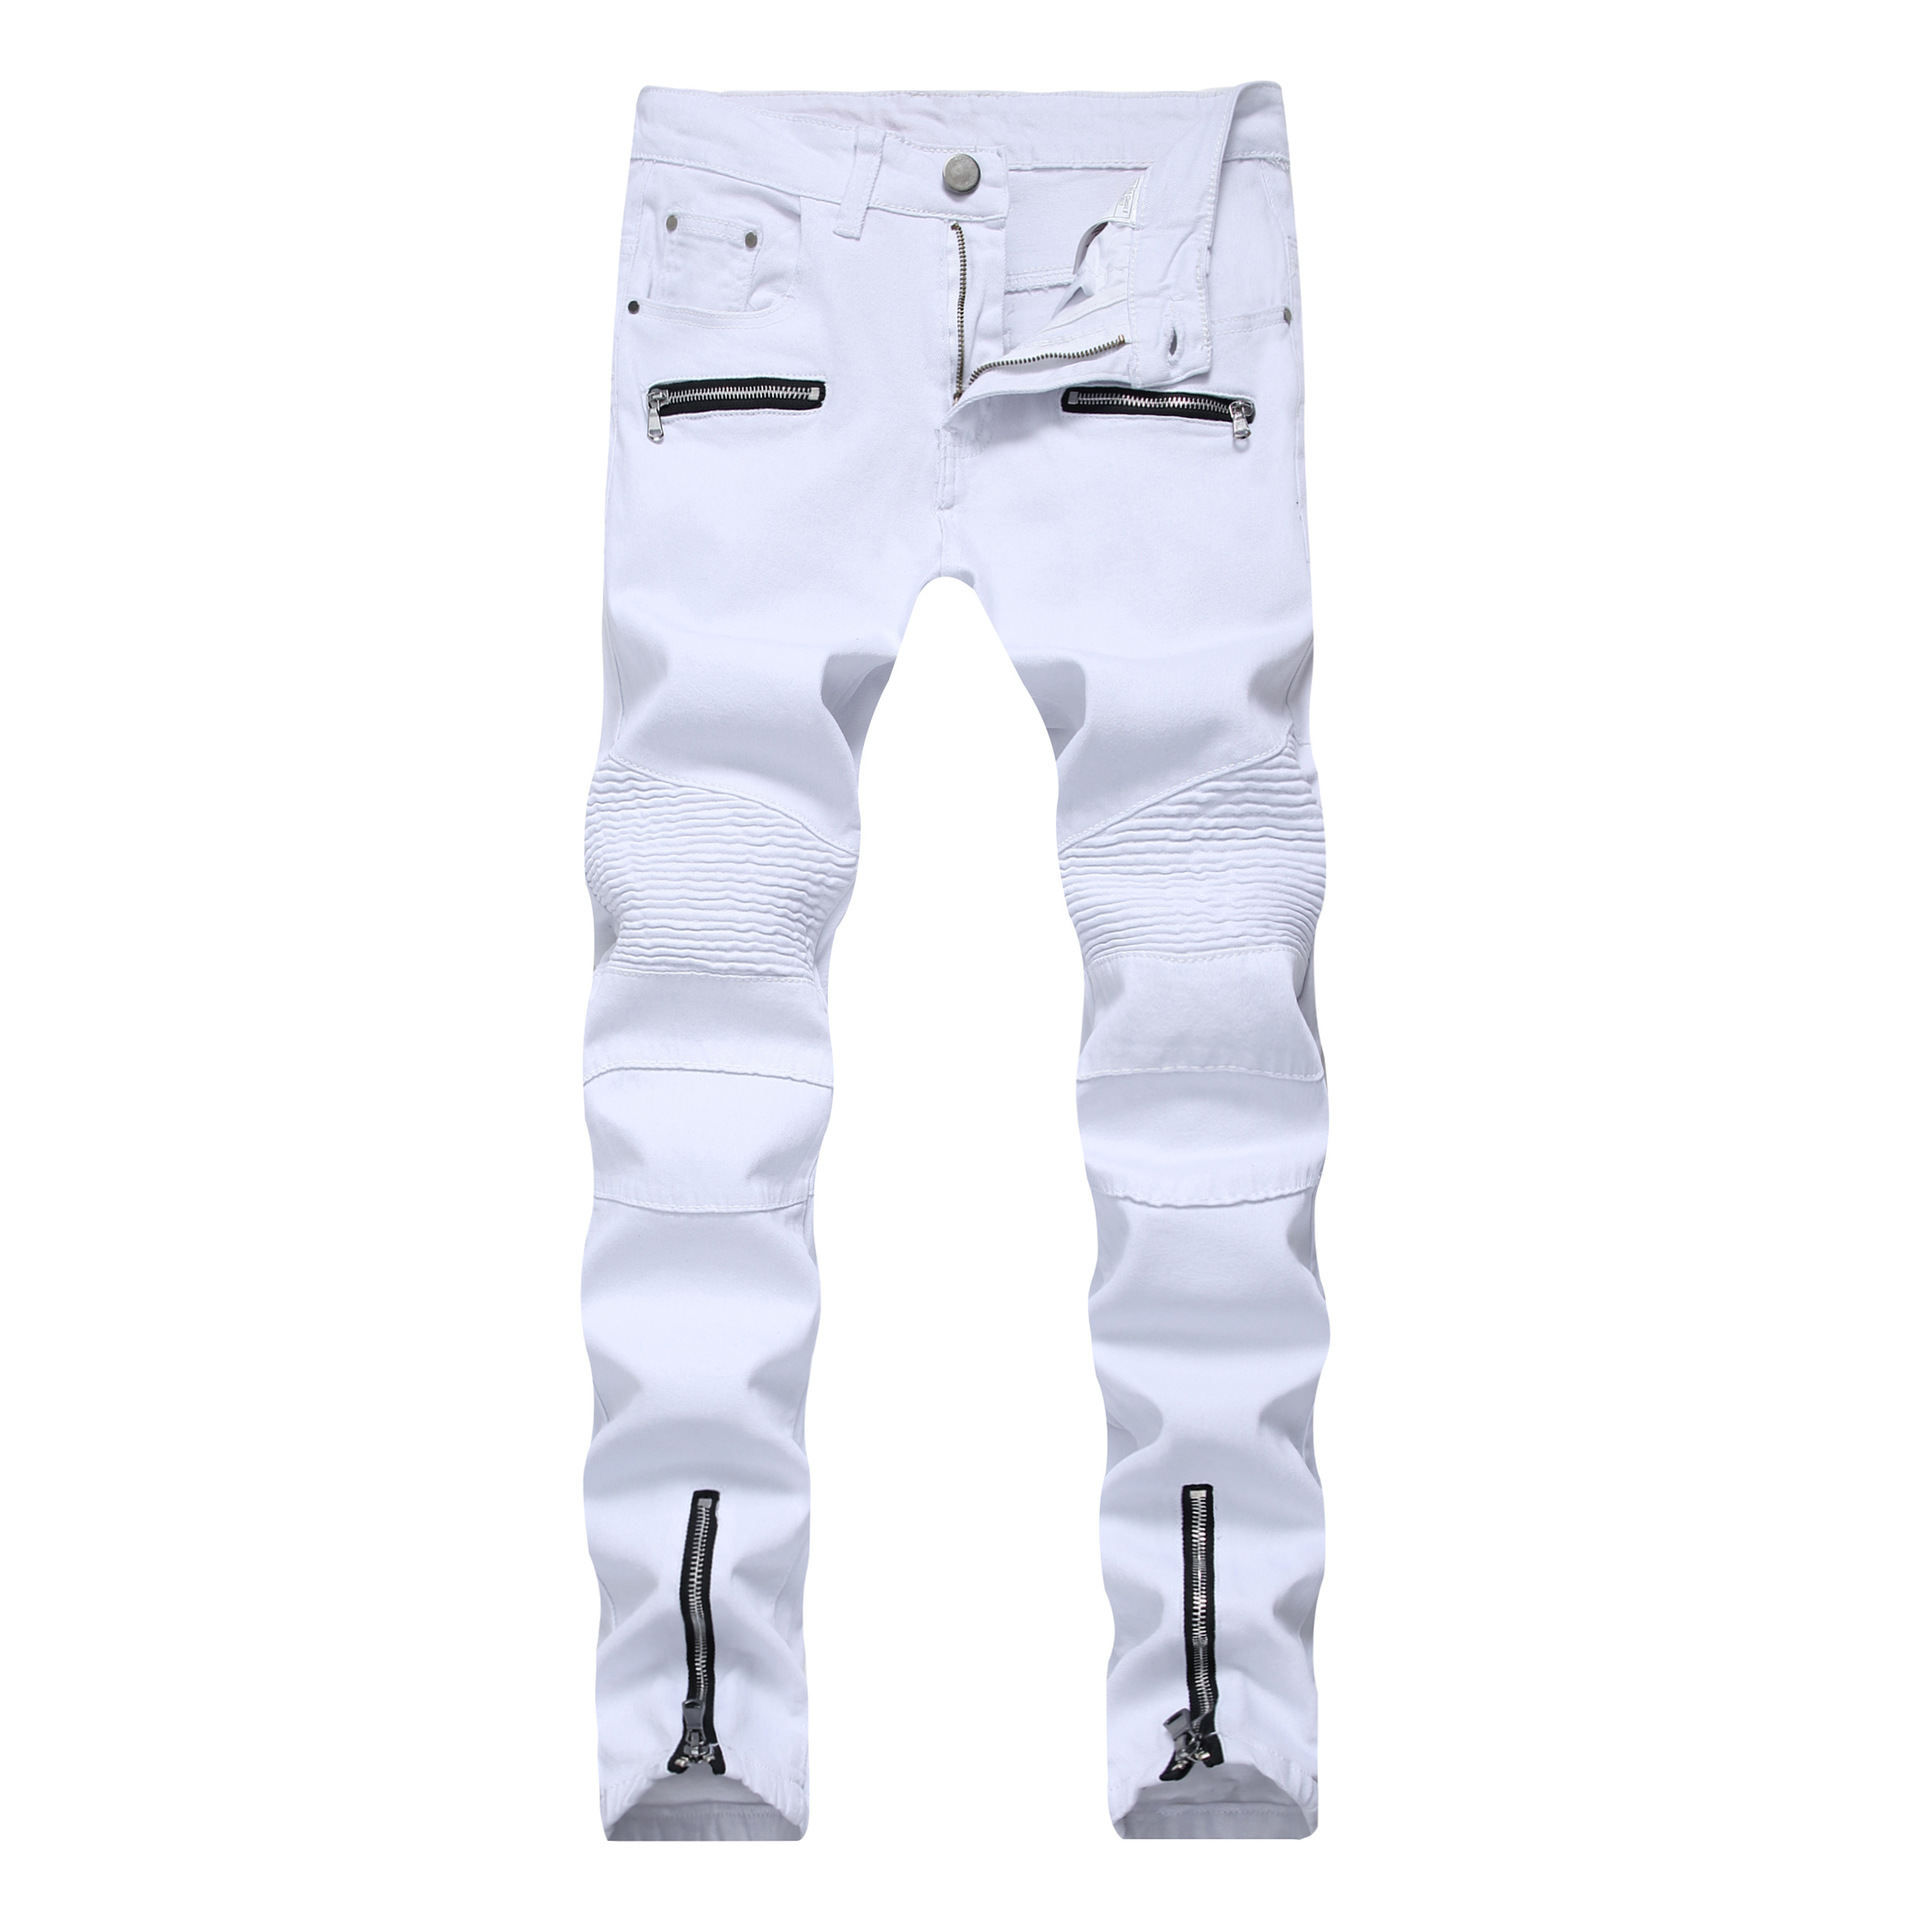 Men high street Motorcycle jeans zipper leisure cowboy trade high elastic denim trousers ...